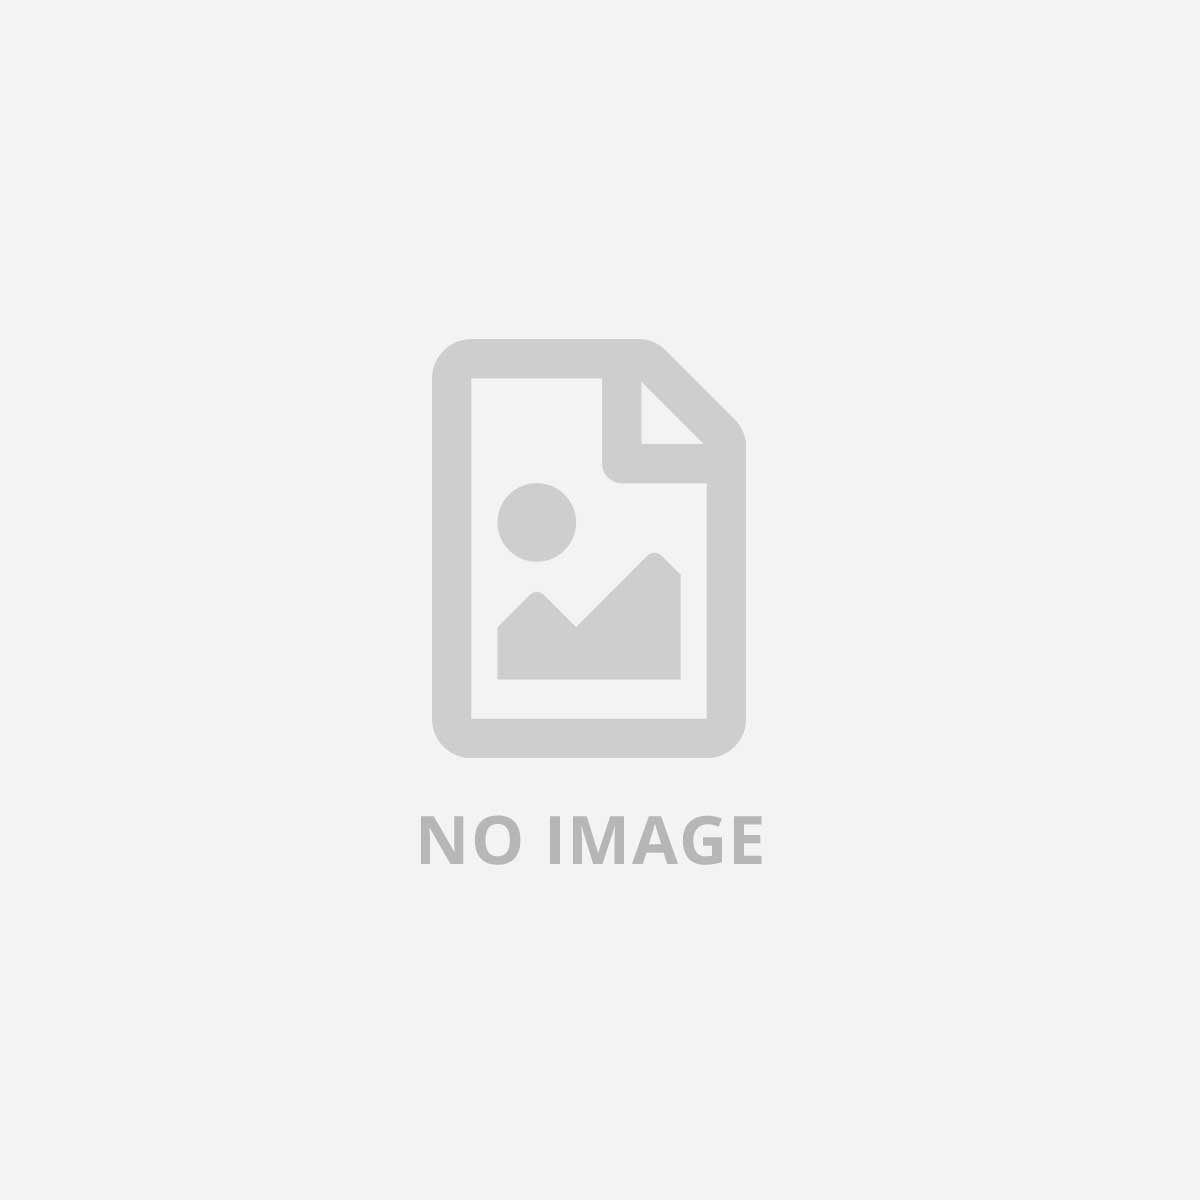 KOCH MEDIA RETRO-BIT SEGA MD 8-BUTTON USB BLUE